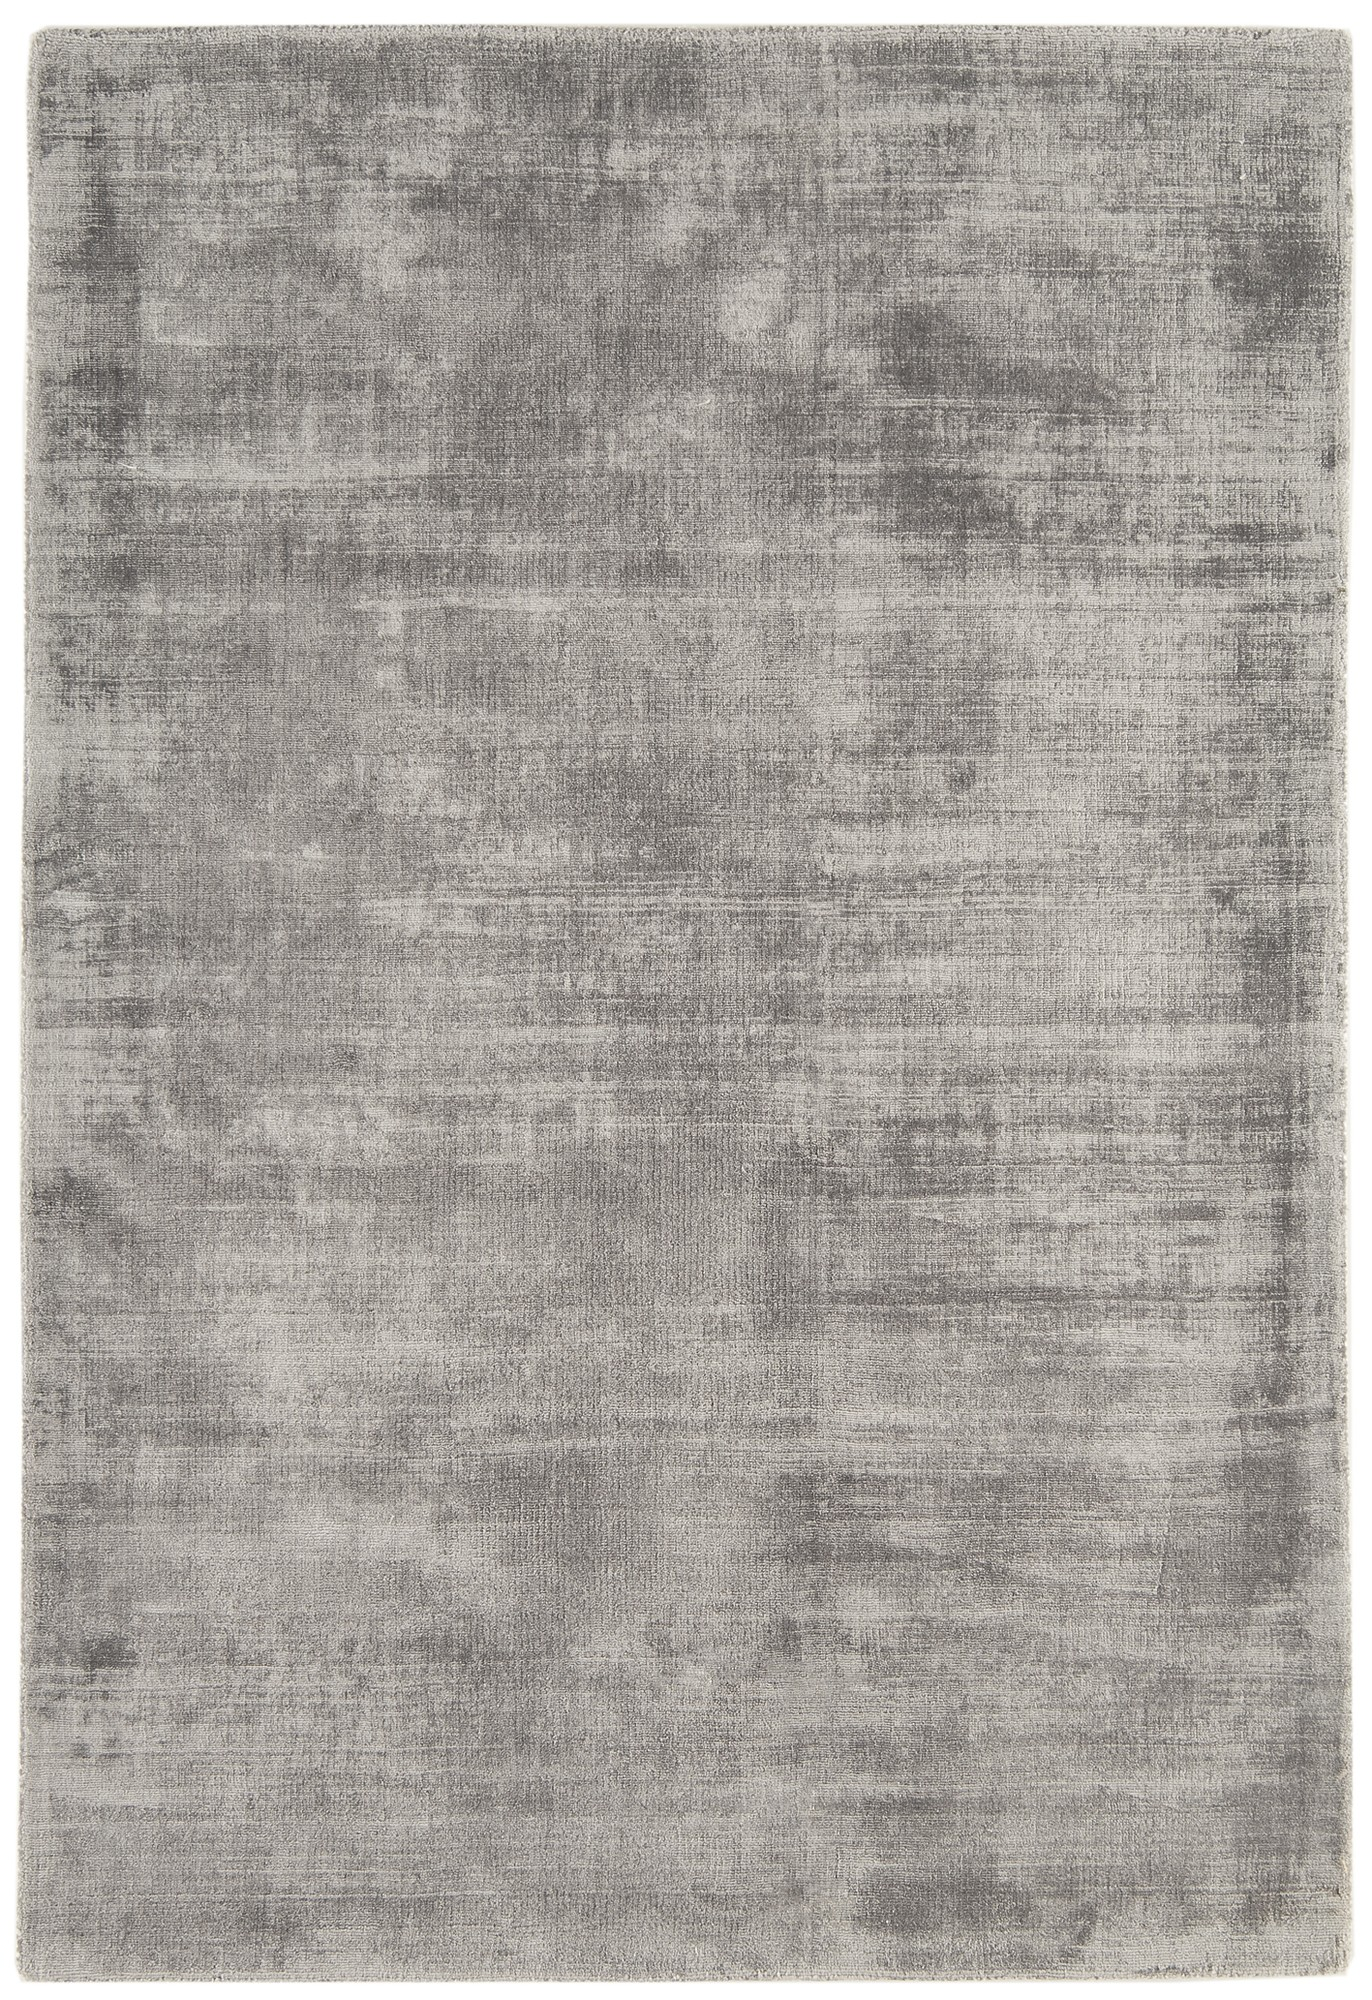 Asiatic Blade Silver Grey Silver Rug Best Prices And Free